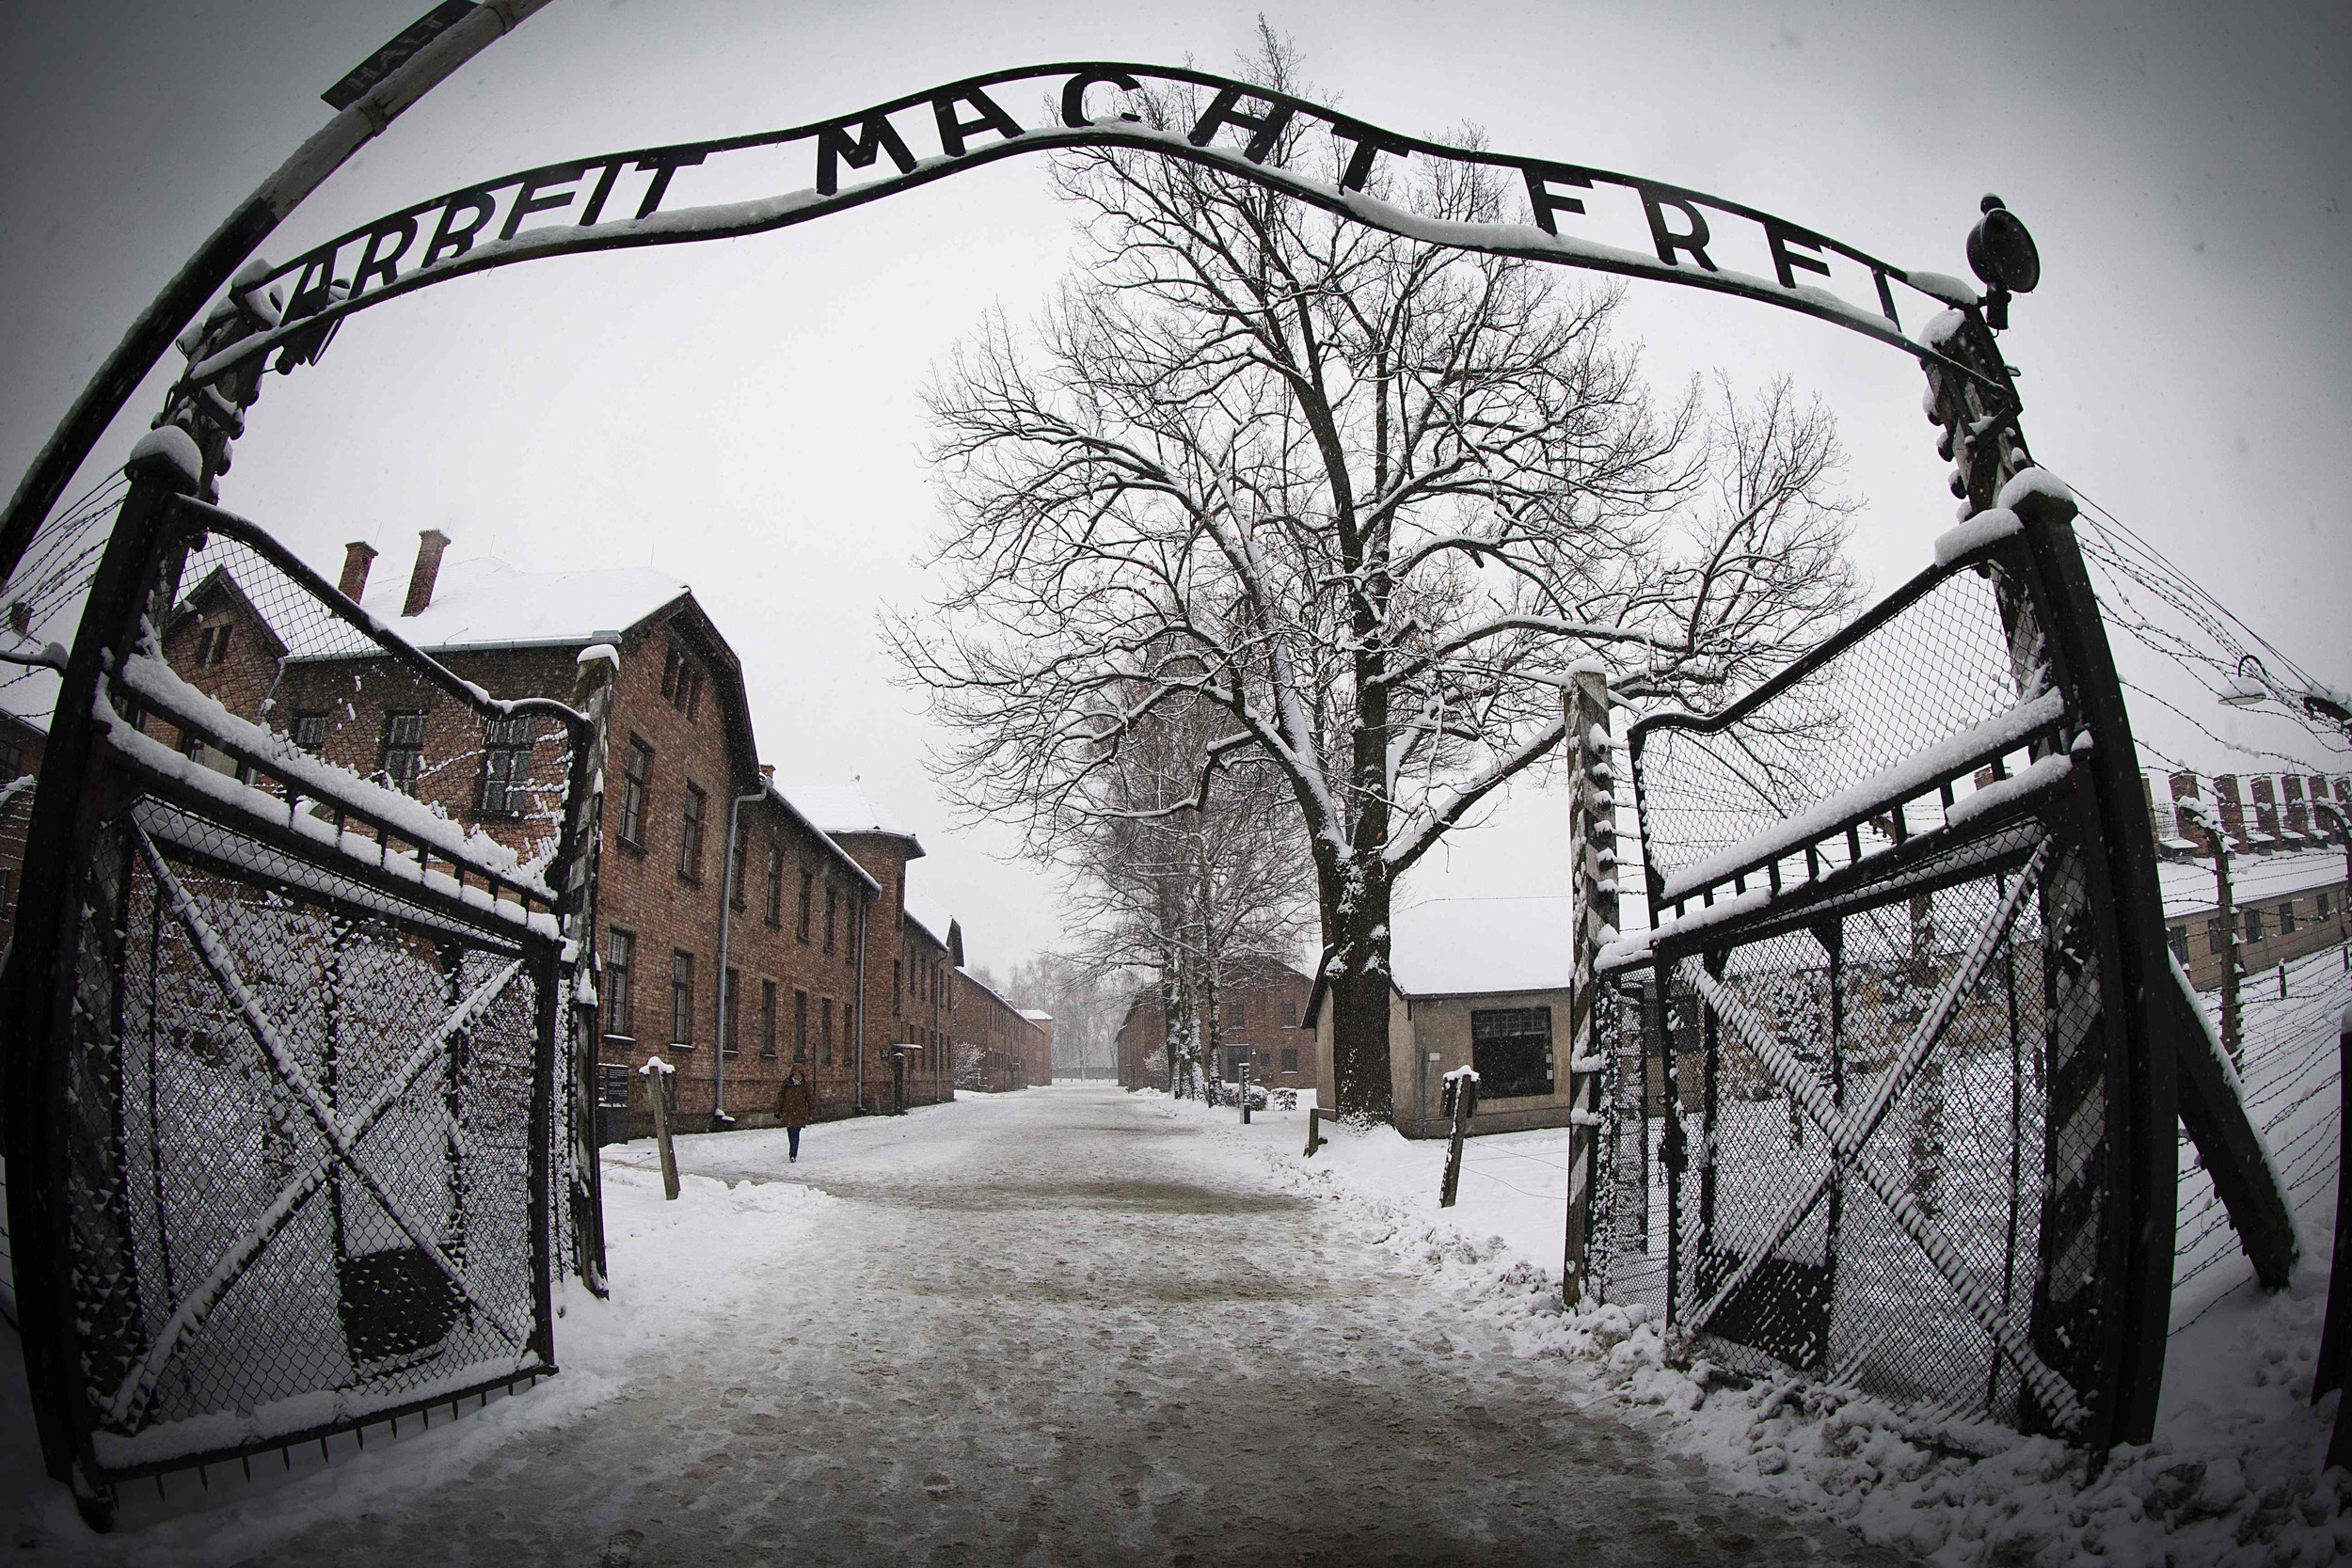 94-year-old-former-Auschwitz-guard-charged-with-accessory-to-murder